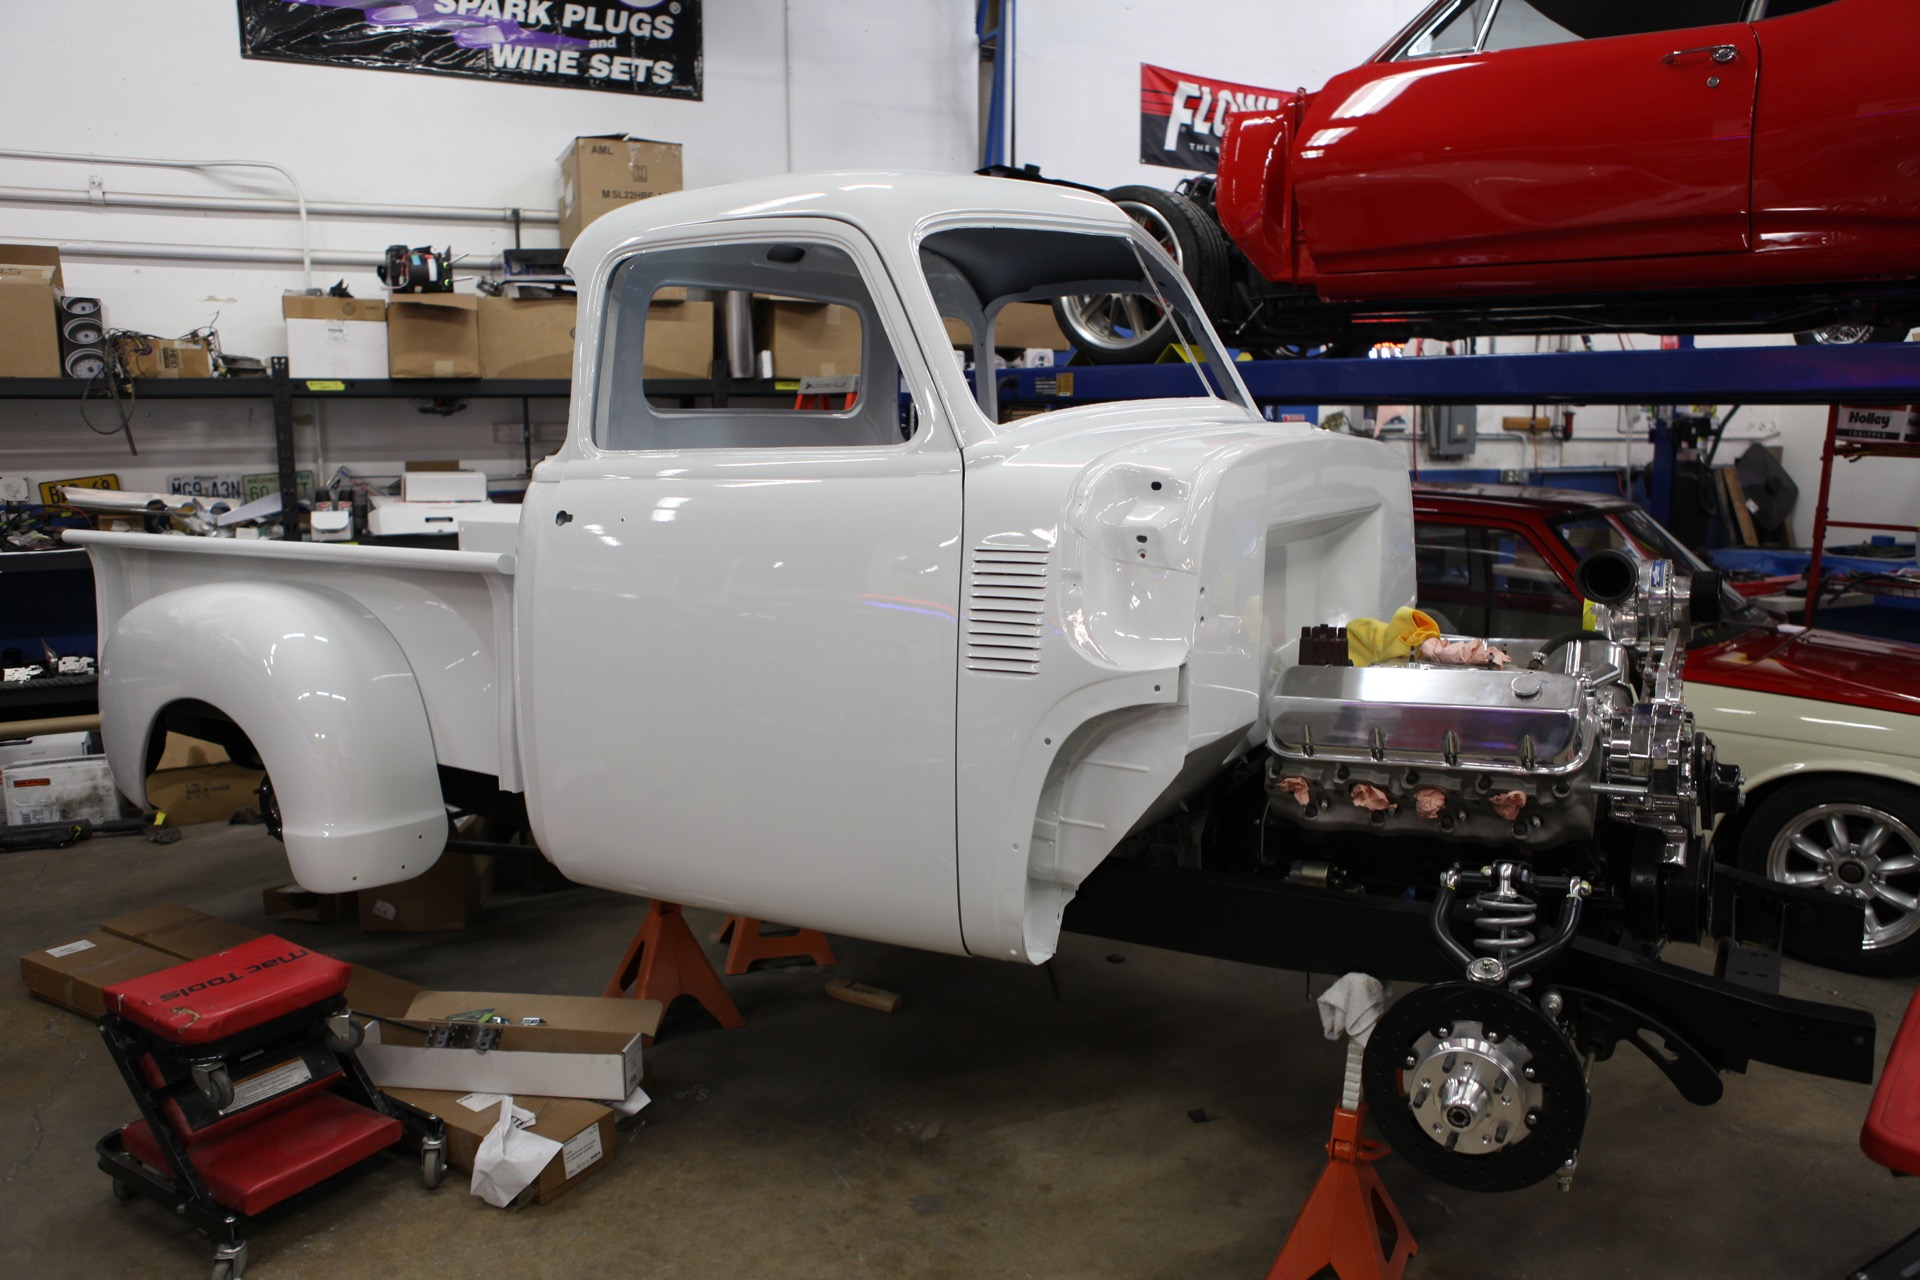 1951 Chevy Truck Metalworks Classics Auto Restoration Speed Shop Wiring Cab On Chassis